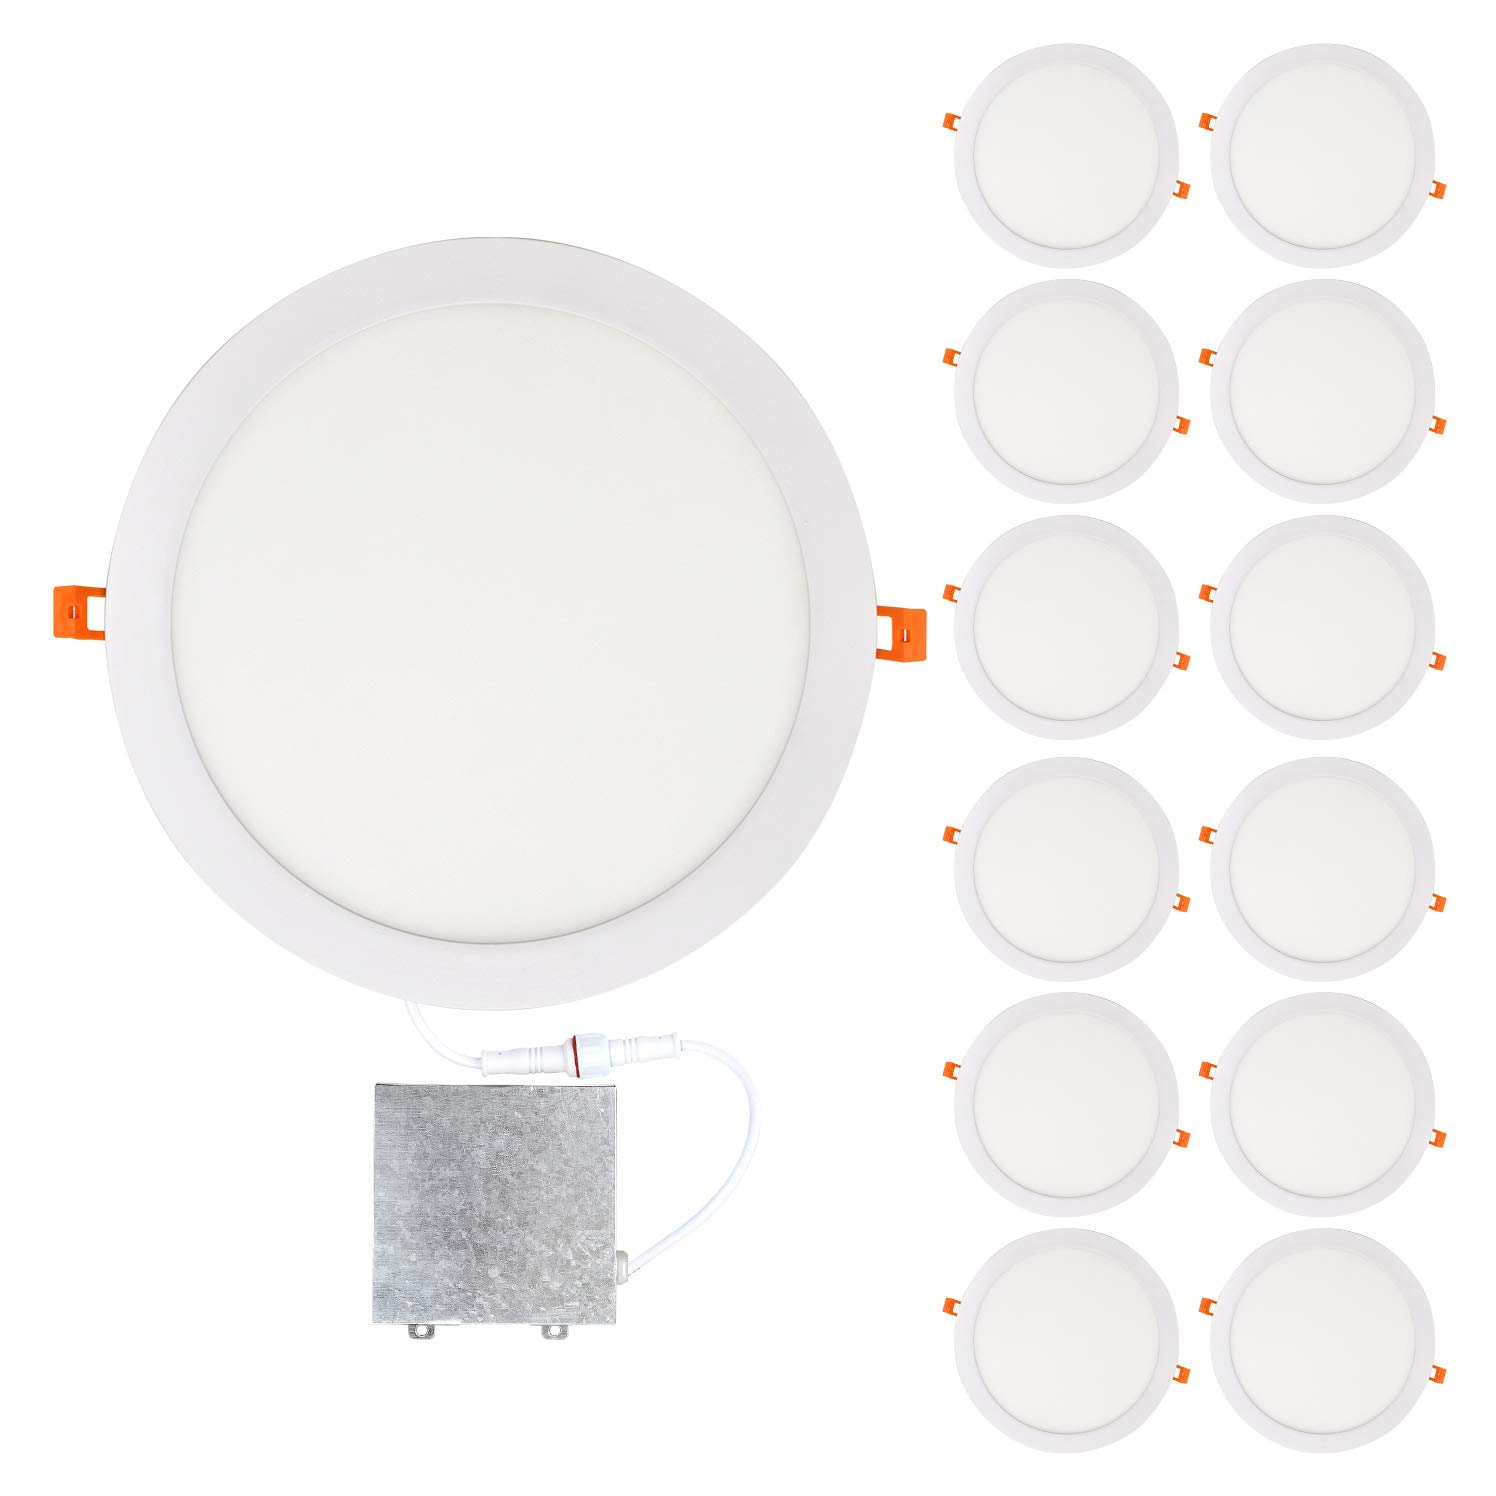 OSTWIN 12 inch 24W (120 Watt Repl.) IC Rated LED Recessed Low Profile Slim Round Panel Light with Junction Box, Dimmable, 3000K Warm Light 1800 Lm. No Can Needed, 12 Pack ETL & Energy Star Listed by OSTWIN (Image #1)